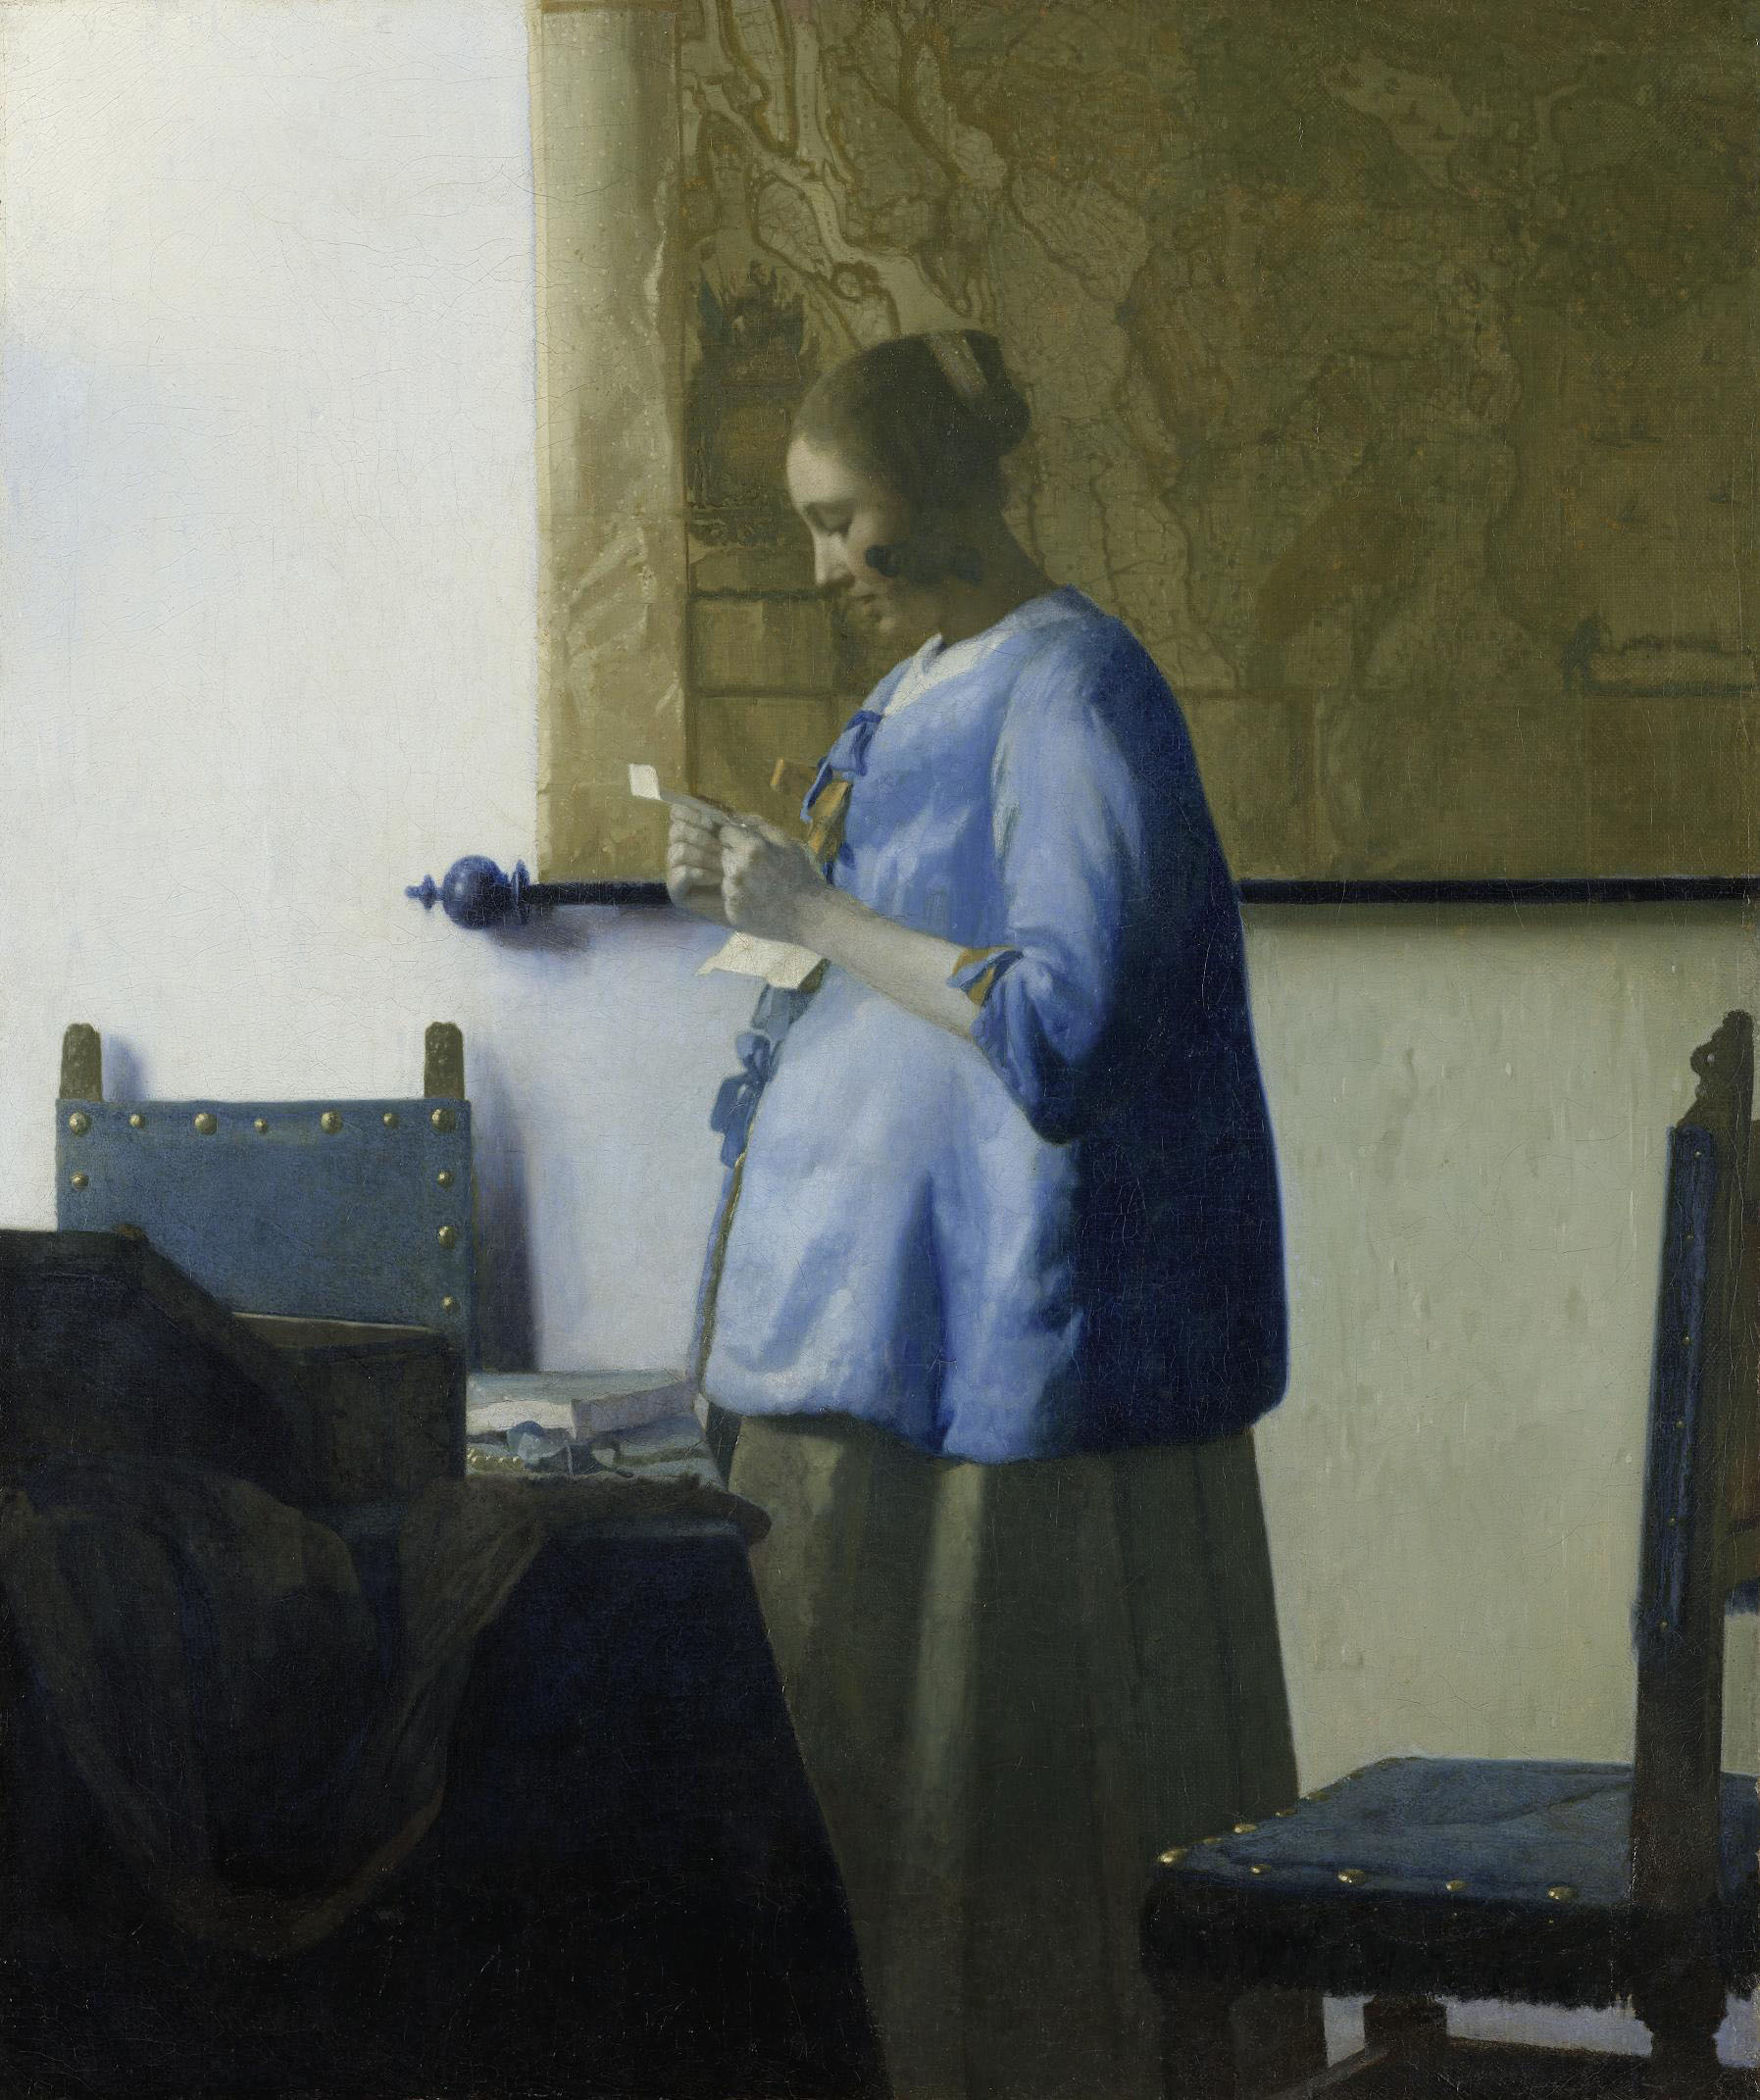 'Woman in Blue Reading a Letter' (c.1663-1664) by Johannes Vermeer | (C) RIJKSMUSEUM, AMSTERDAM. ON LOAN FROM THE CITY OF AMSTERDAM (A. VAN DER HOOP BEQUEST)